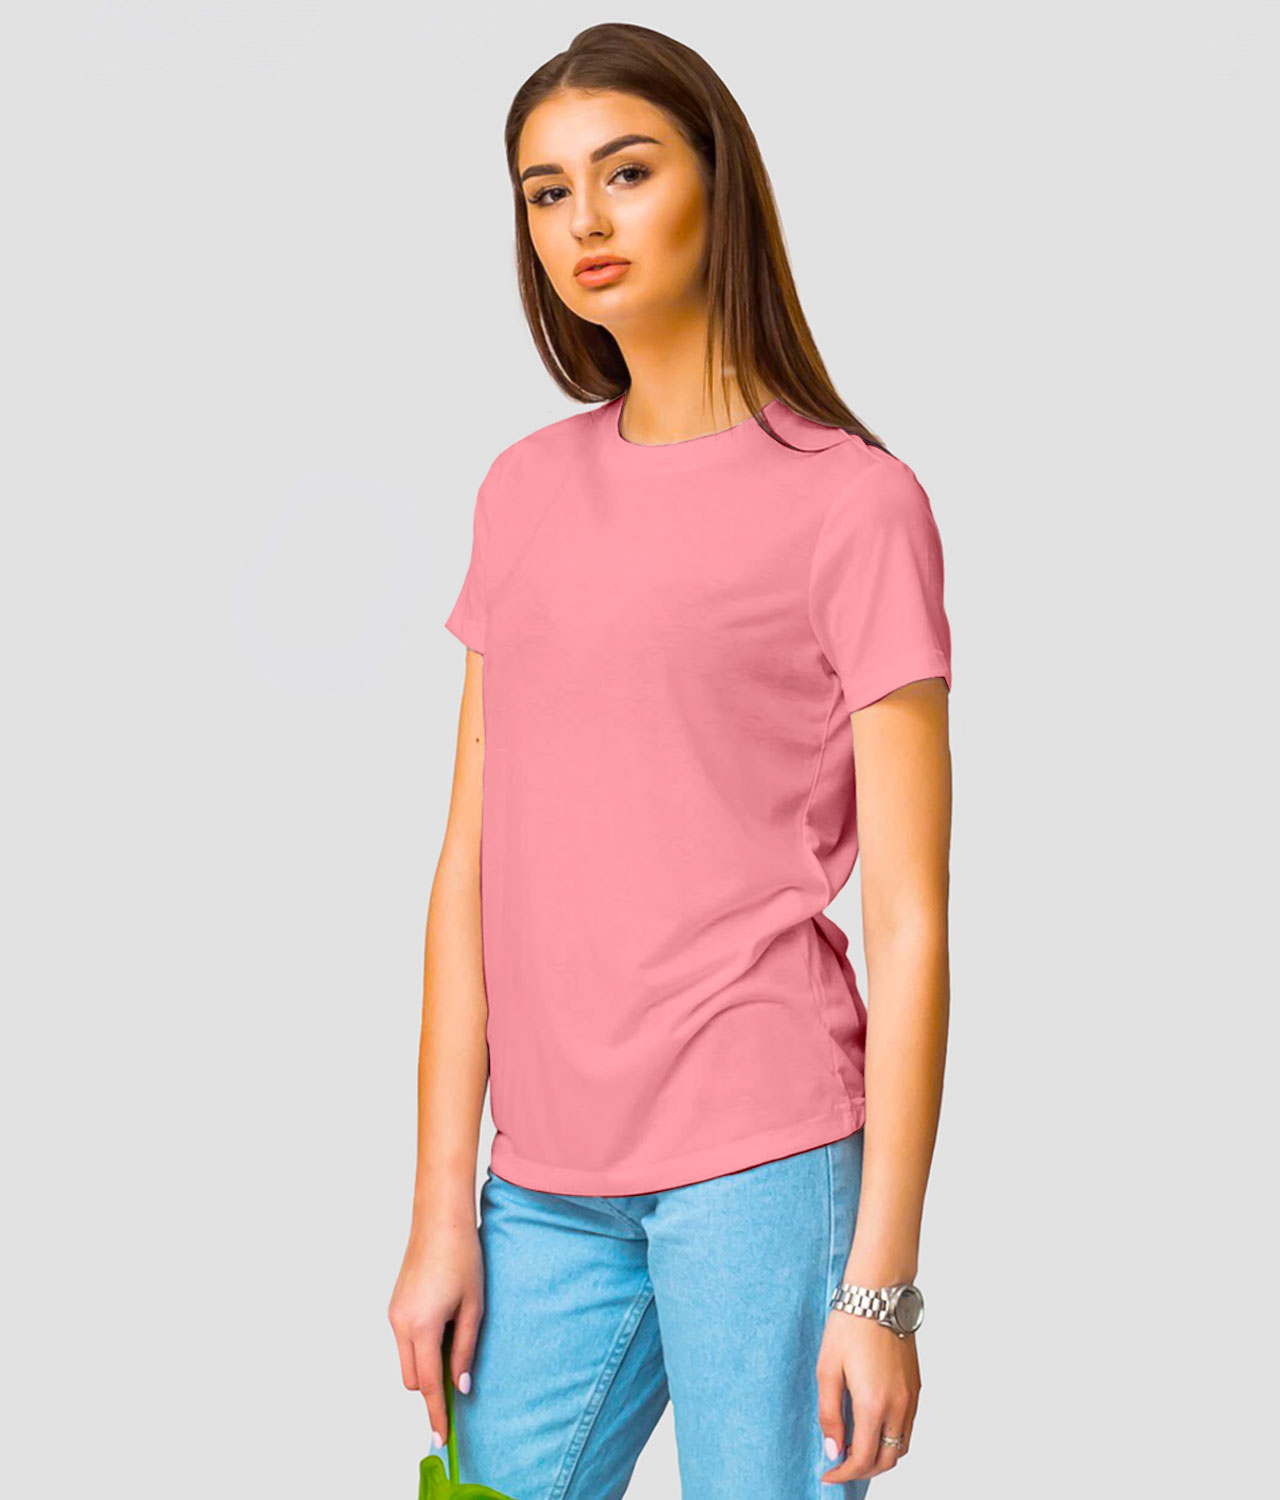 Buy T Shirts Online At Best Prices In India RagaFab